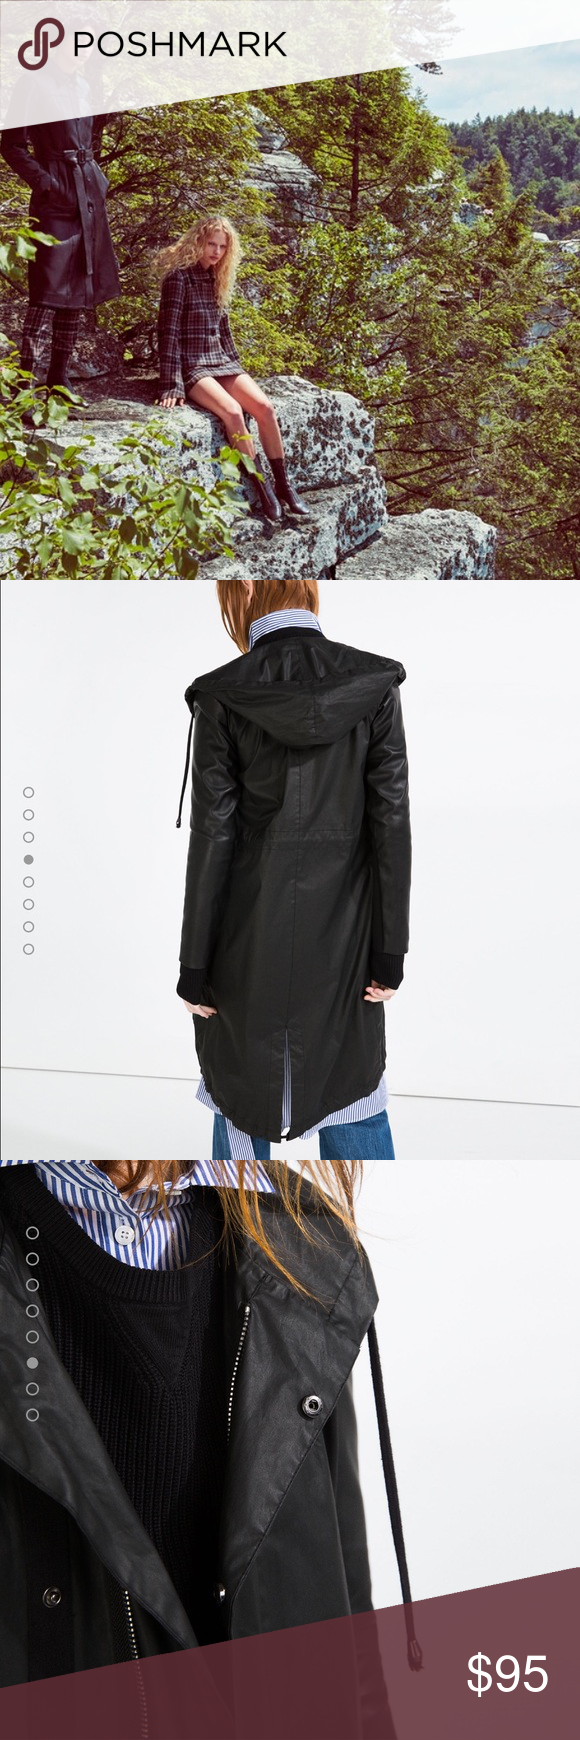 Zara windbraker anorak long parka ,hoodie raincoat Sold out everywhere, super comfy to wear great fit , additional pics available on another listing,ONLY ONE AVAILABLE, Sz S , very light weight but super protective!!! Zara Jackets & Coats